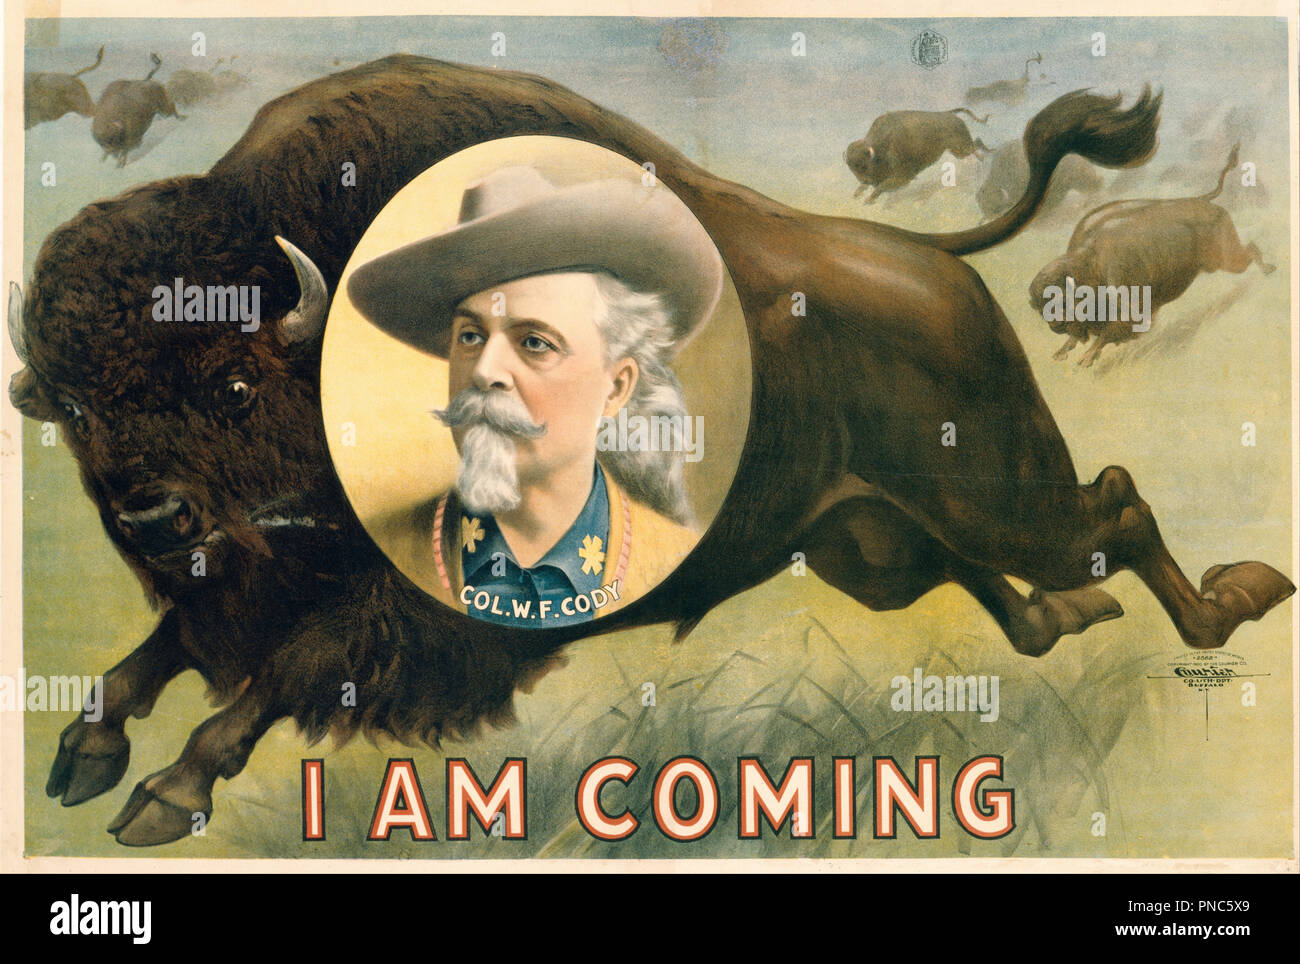 'Buffalo Bill' Cody. Date/Period: 1900. Chromolithographic poster. Print. Height: 673 mm (26.49 in); Width: 1,031 mm (40.59 in). Author: Courier Lithography Company. - Stock Image